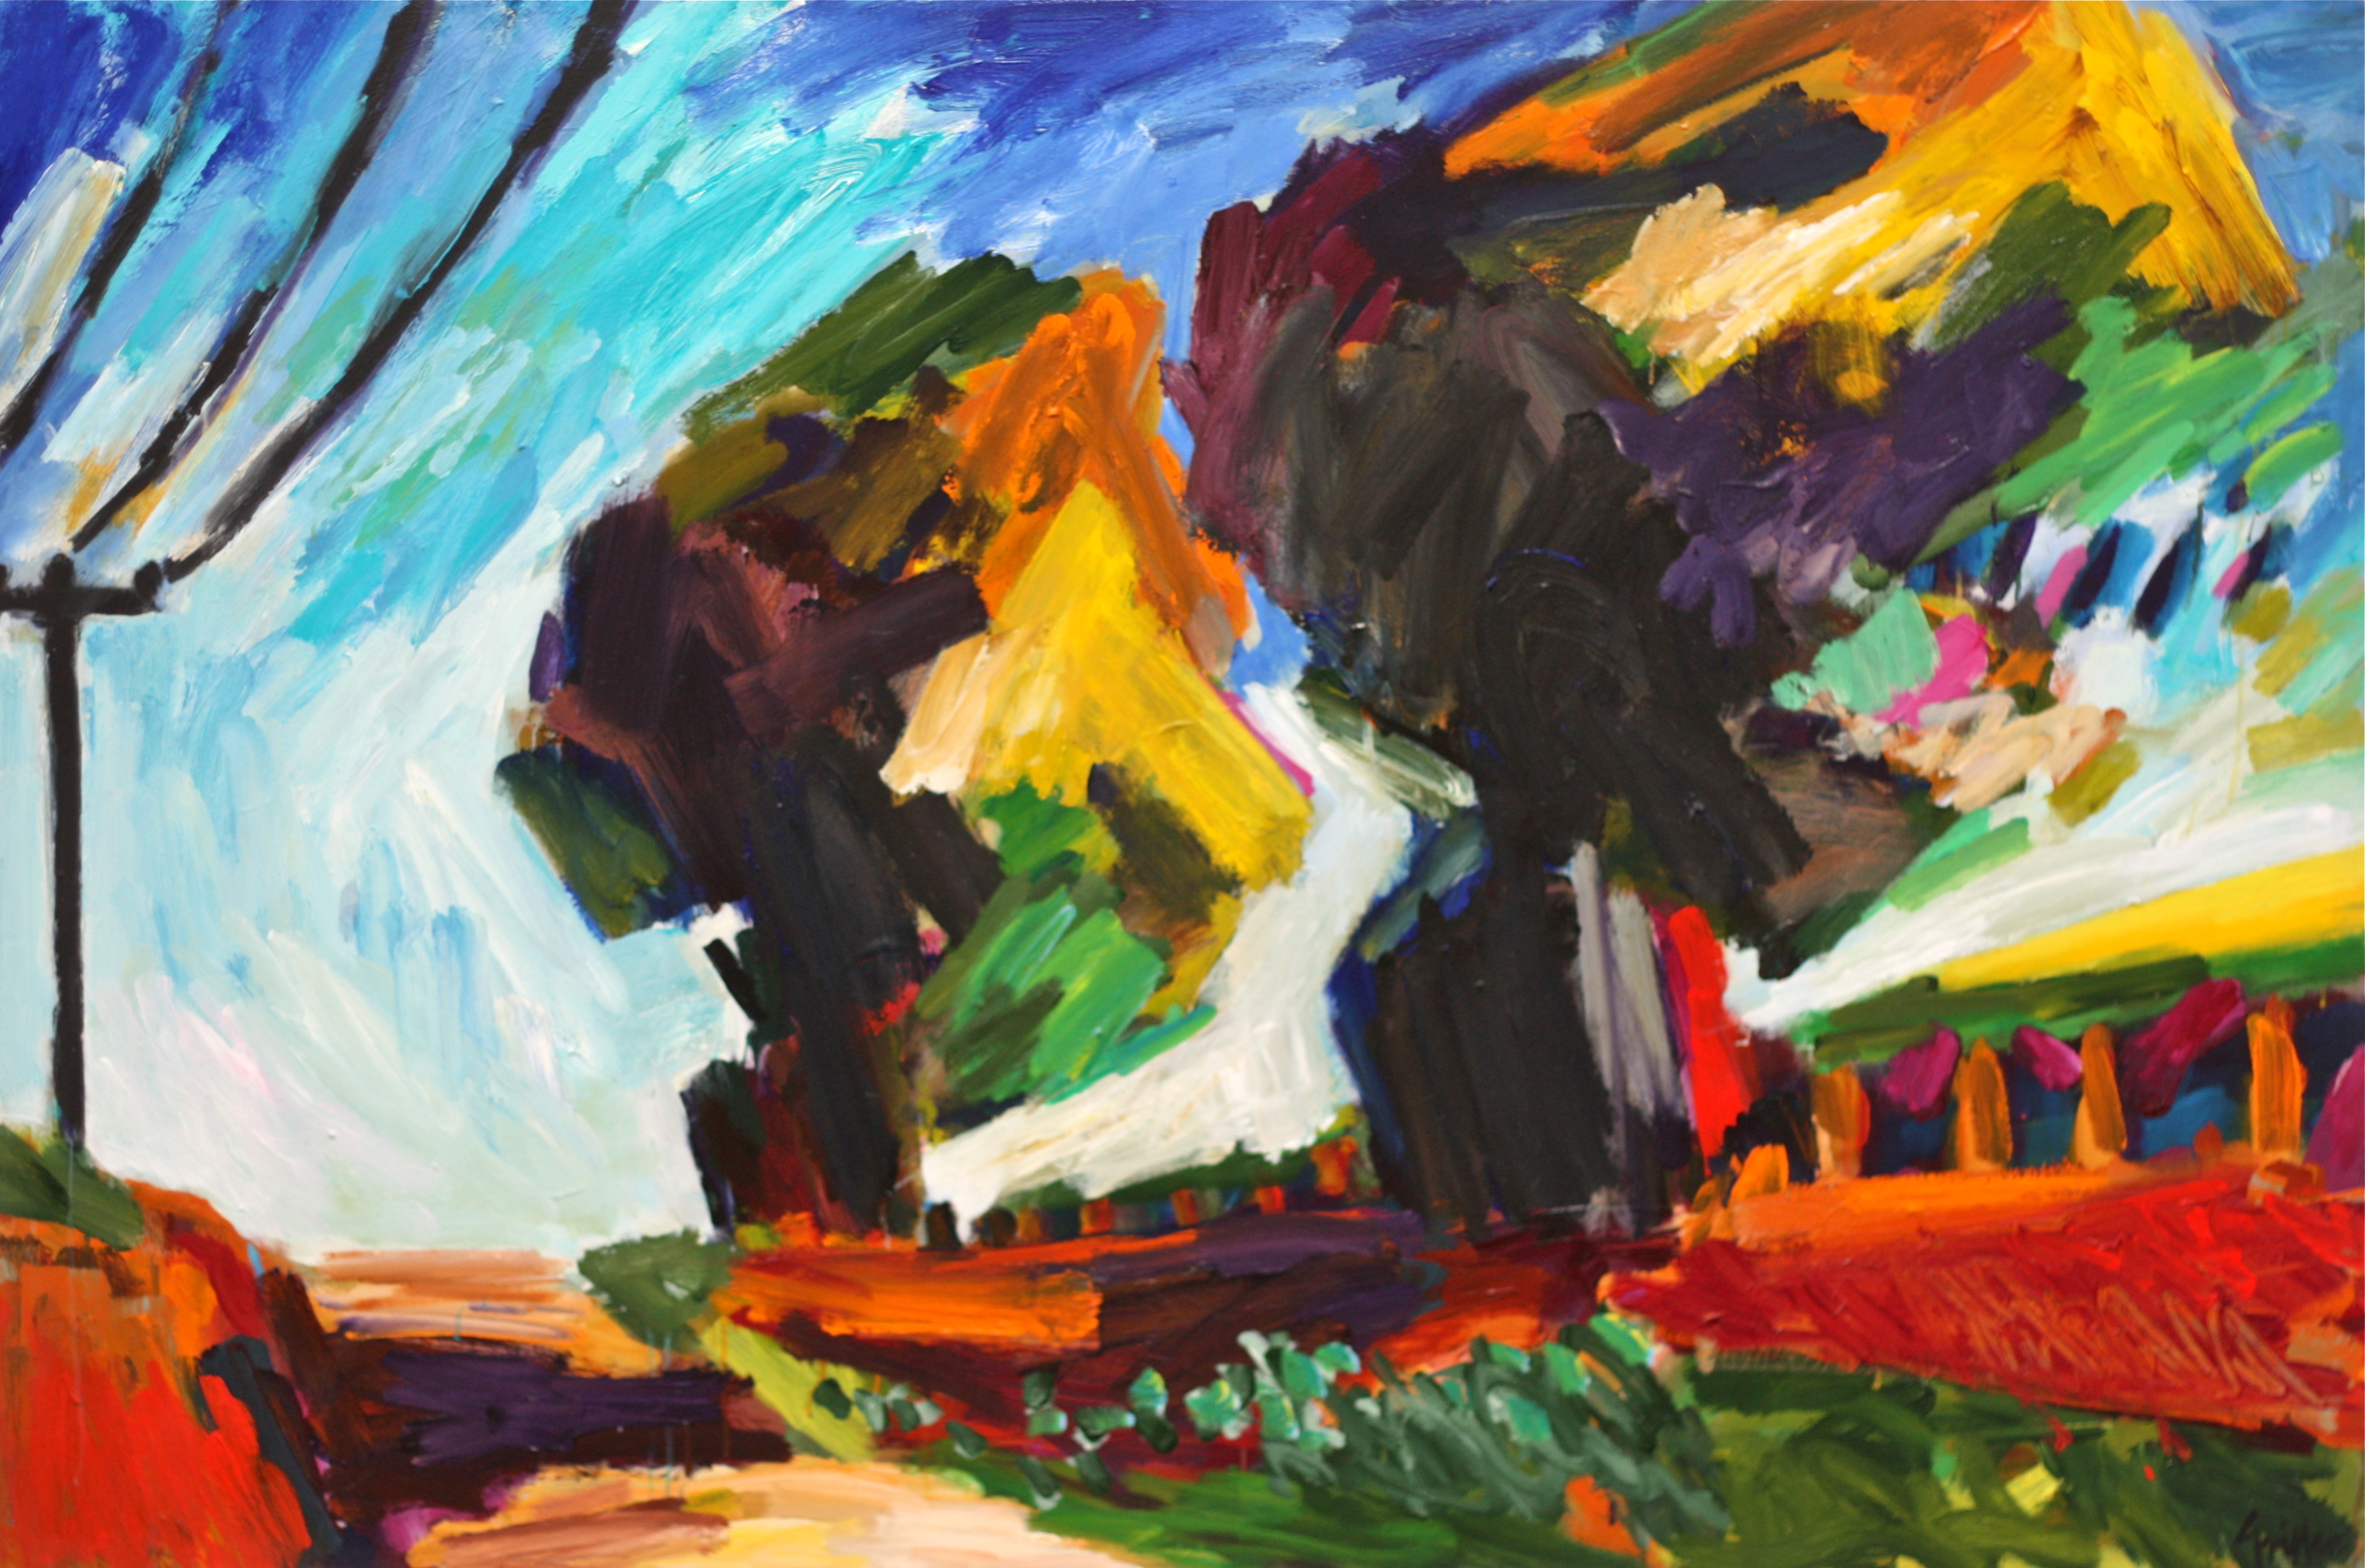 JPEG Two Trees, McLaren Vale 2010 acrylic on canvas 112x168cm